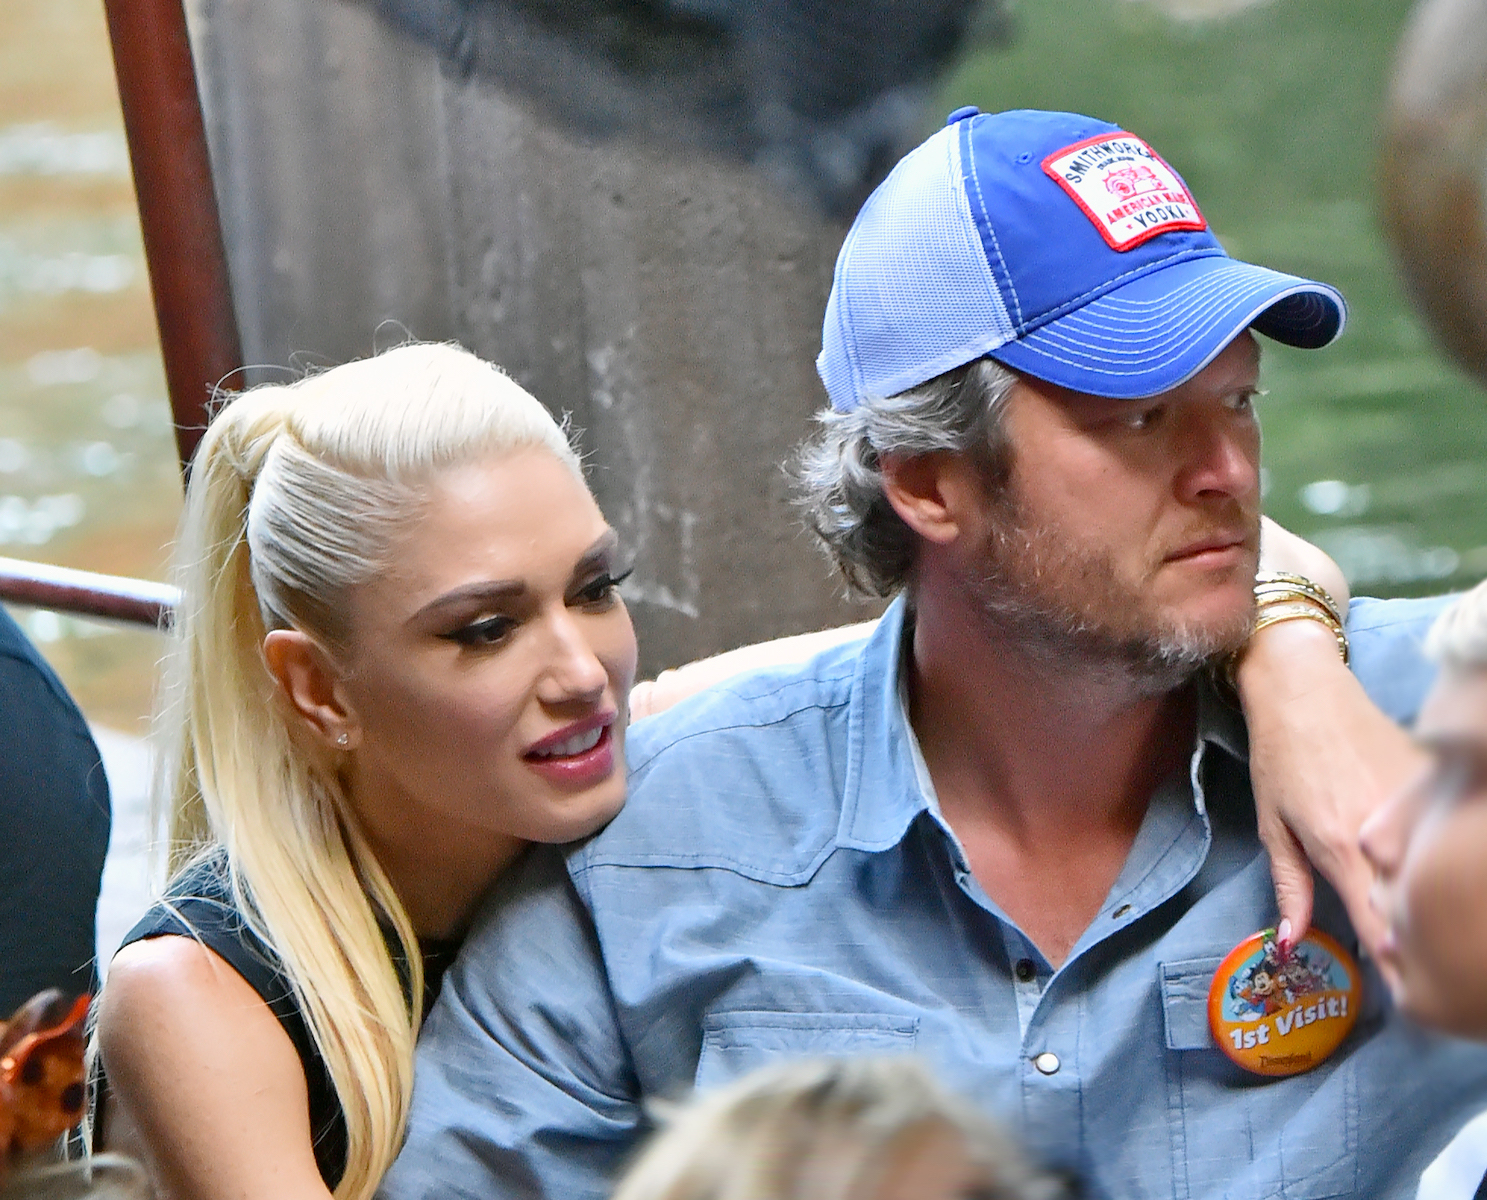 Gwen Stefani and Blake Shelton pack on the PDA while riding the Jungle Cruise ride at Disneyland. Gwen sat next to Blake and and had both arms around him and her head on his shoulder  Pictured: Gwen Stefani and Blake Shelton,Gwen Stefani Blake Shelton Ref: SPL1372816 121016 NON-EXCLUSIVE Picture by: SplashNews.com  Splash News and Pictures Los Angeles: 310-821-2666 New York: 212-619-2666 London: 0207 644 7656 Milan: 02 4399 8577 photodesk@splashnews.com  World Rights